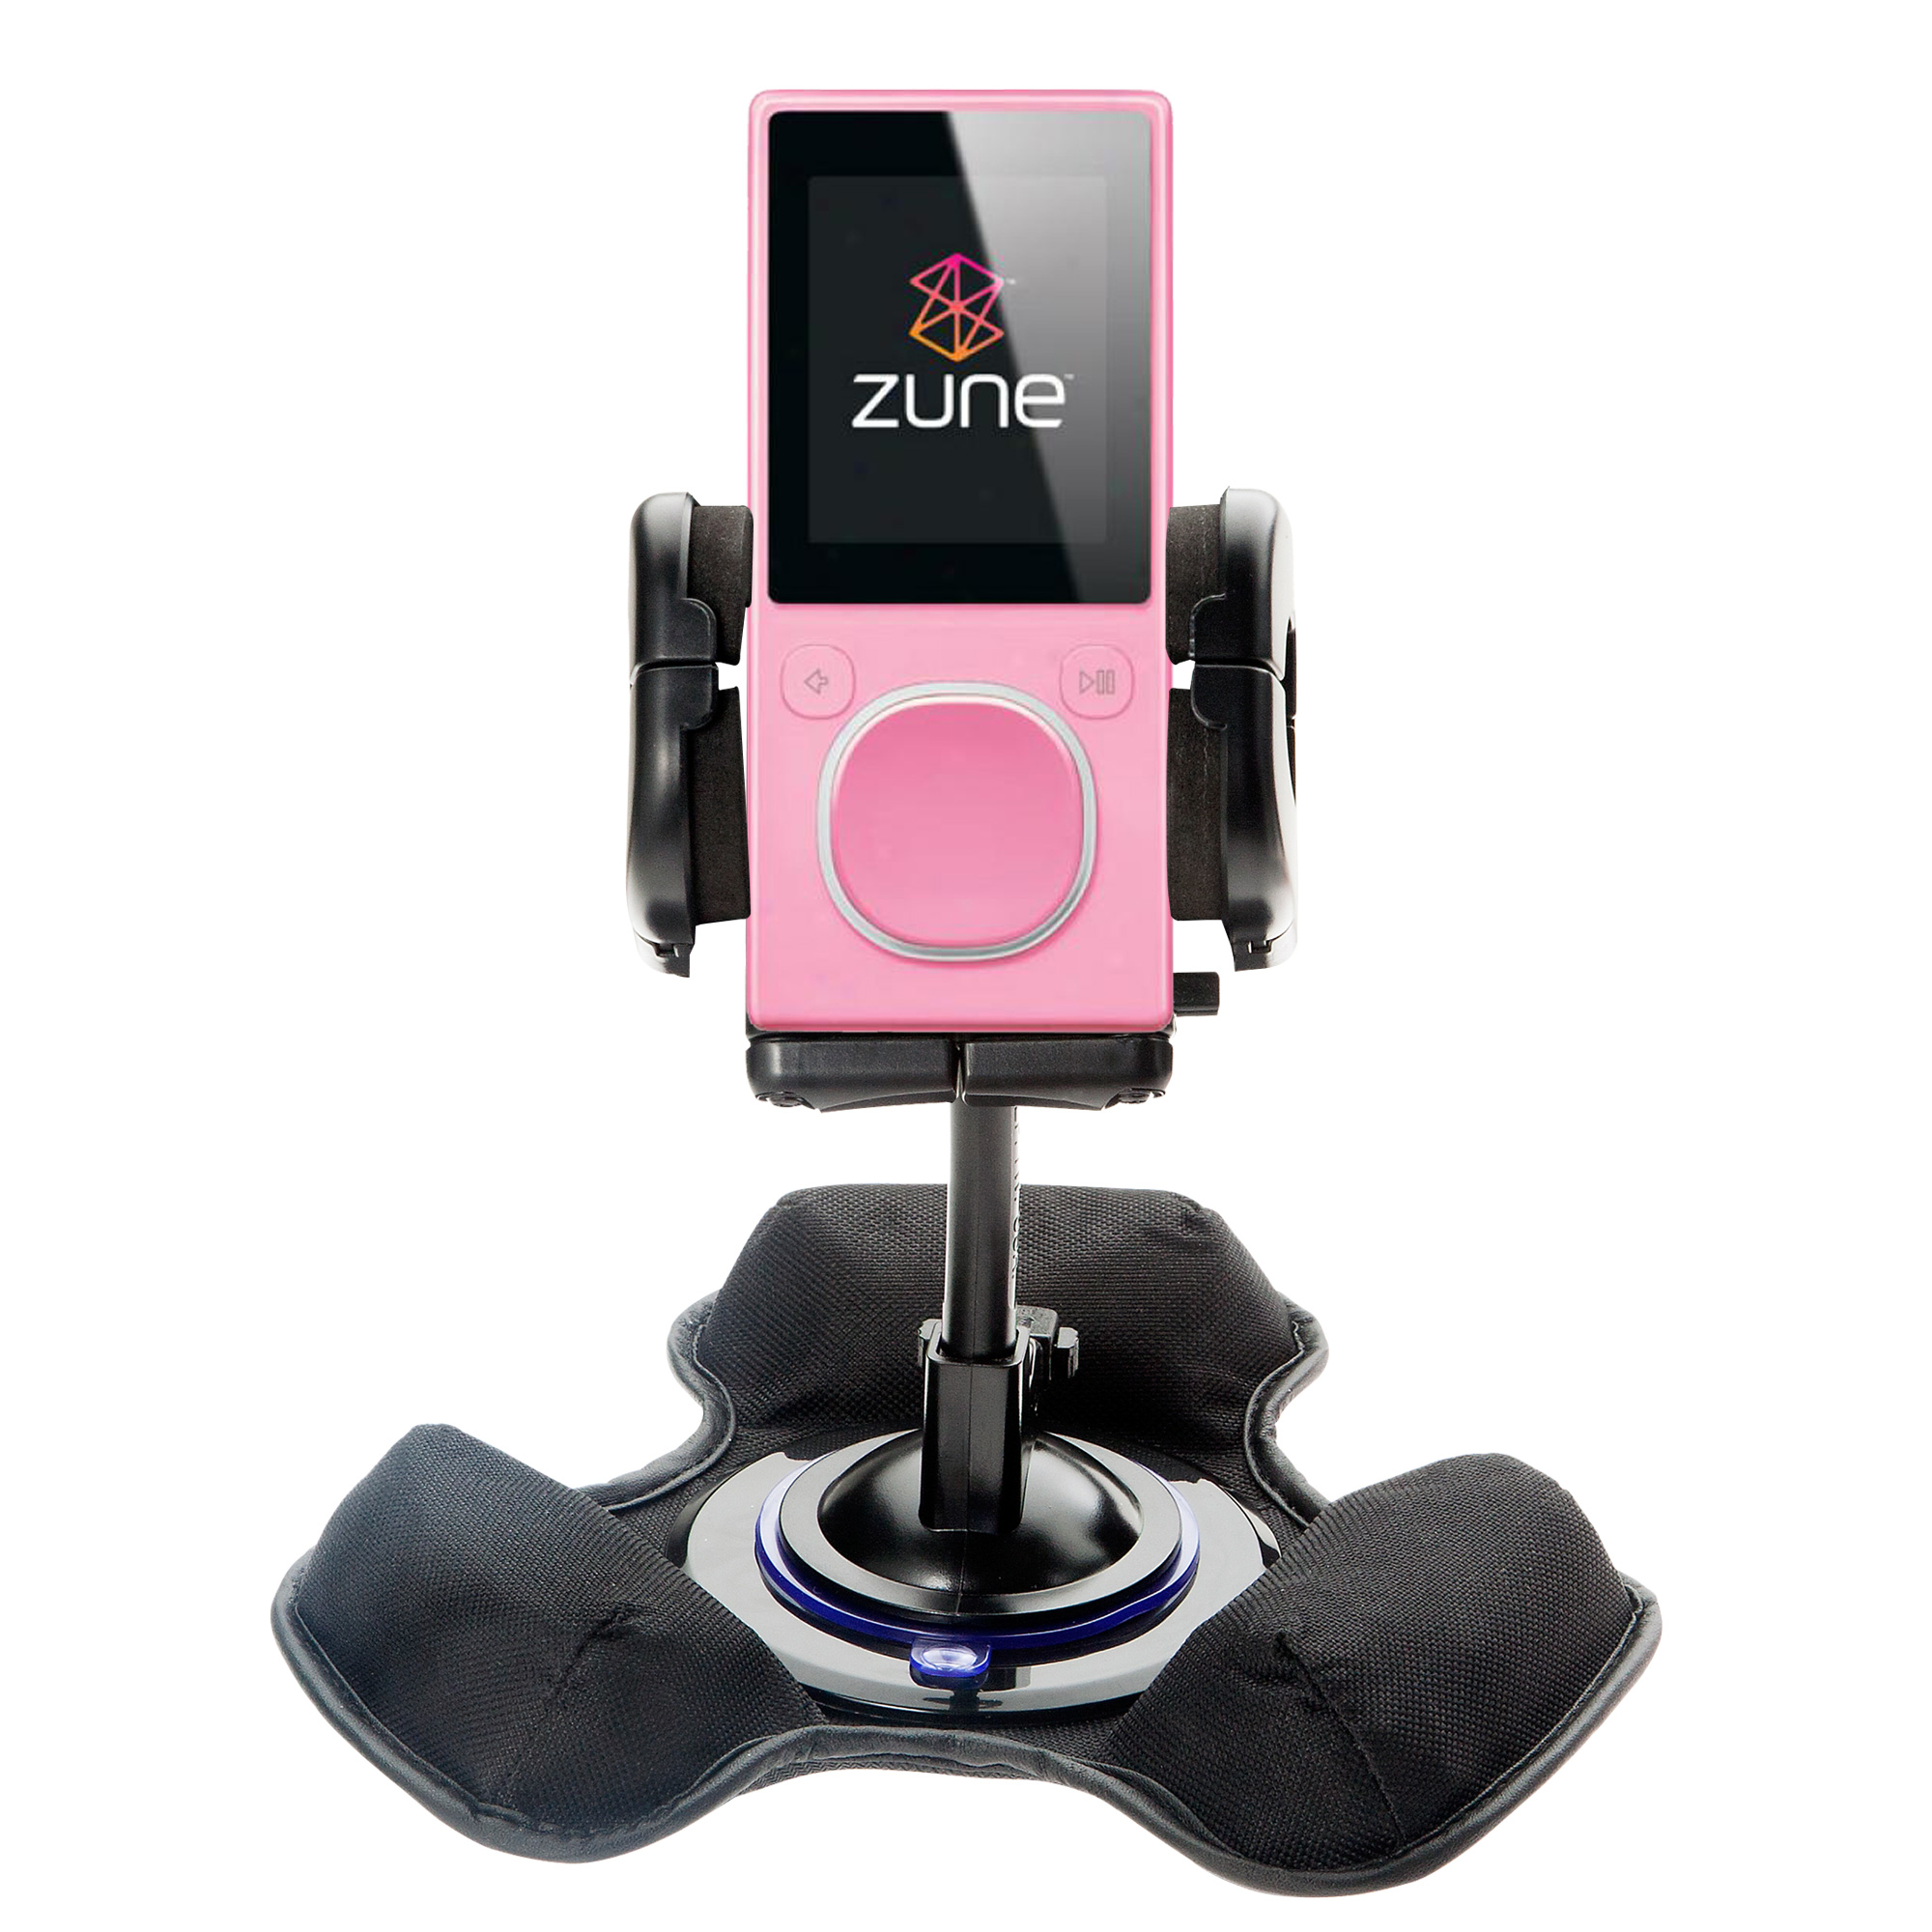 Dash and Windshield Holder compatible with the Microsoft Zune 4GB / 8GB